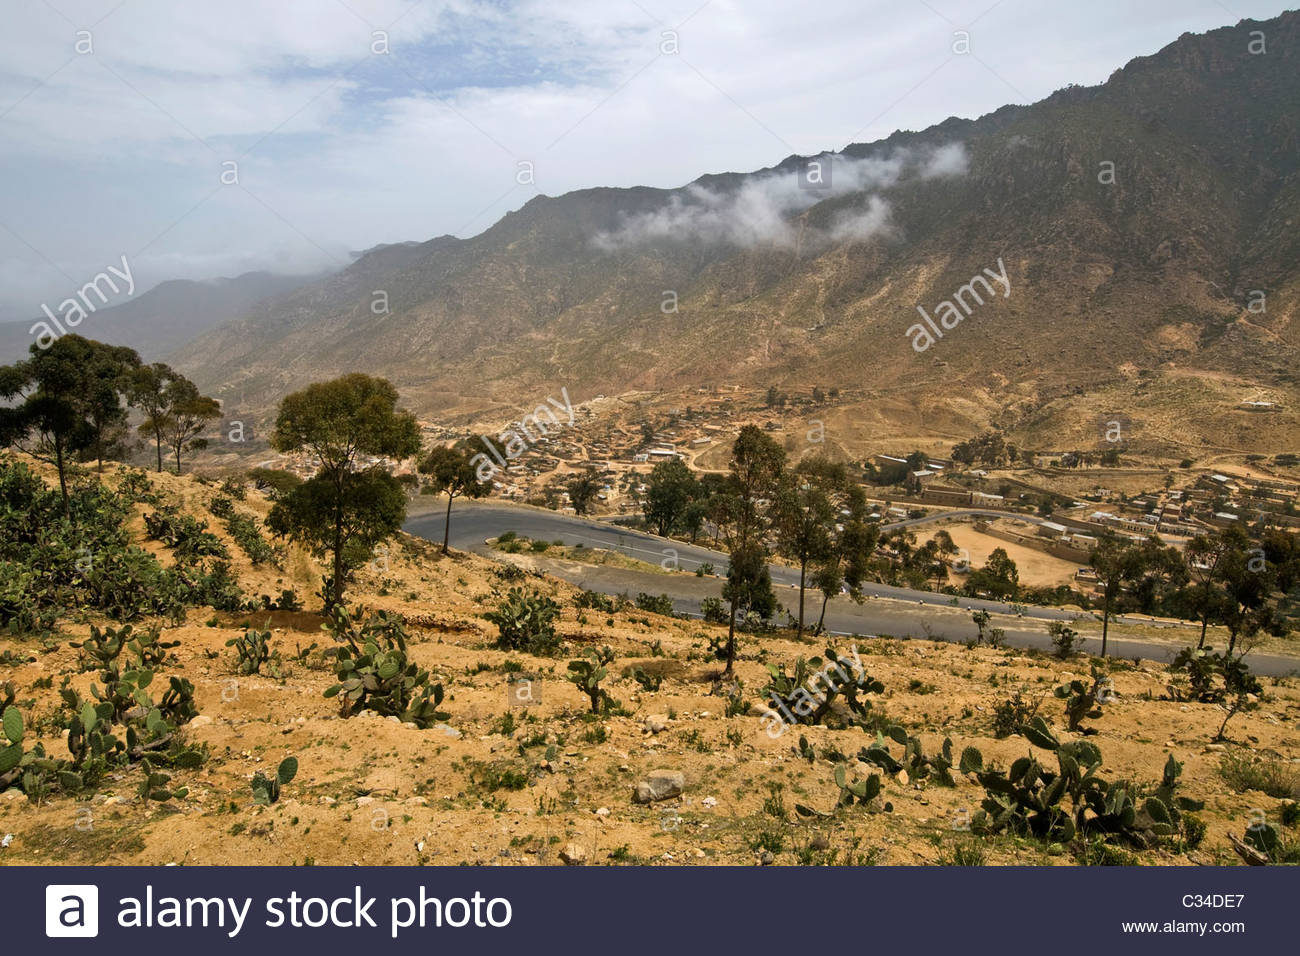 Landscape, surrounding of Nefasit, Eritrea Stock Photo